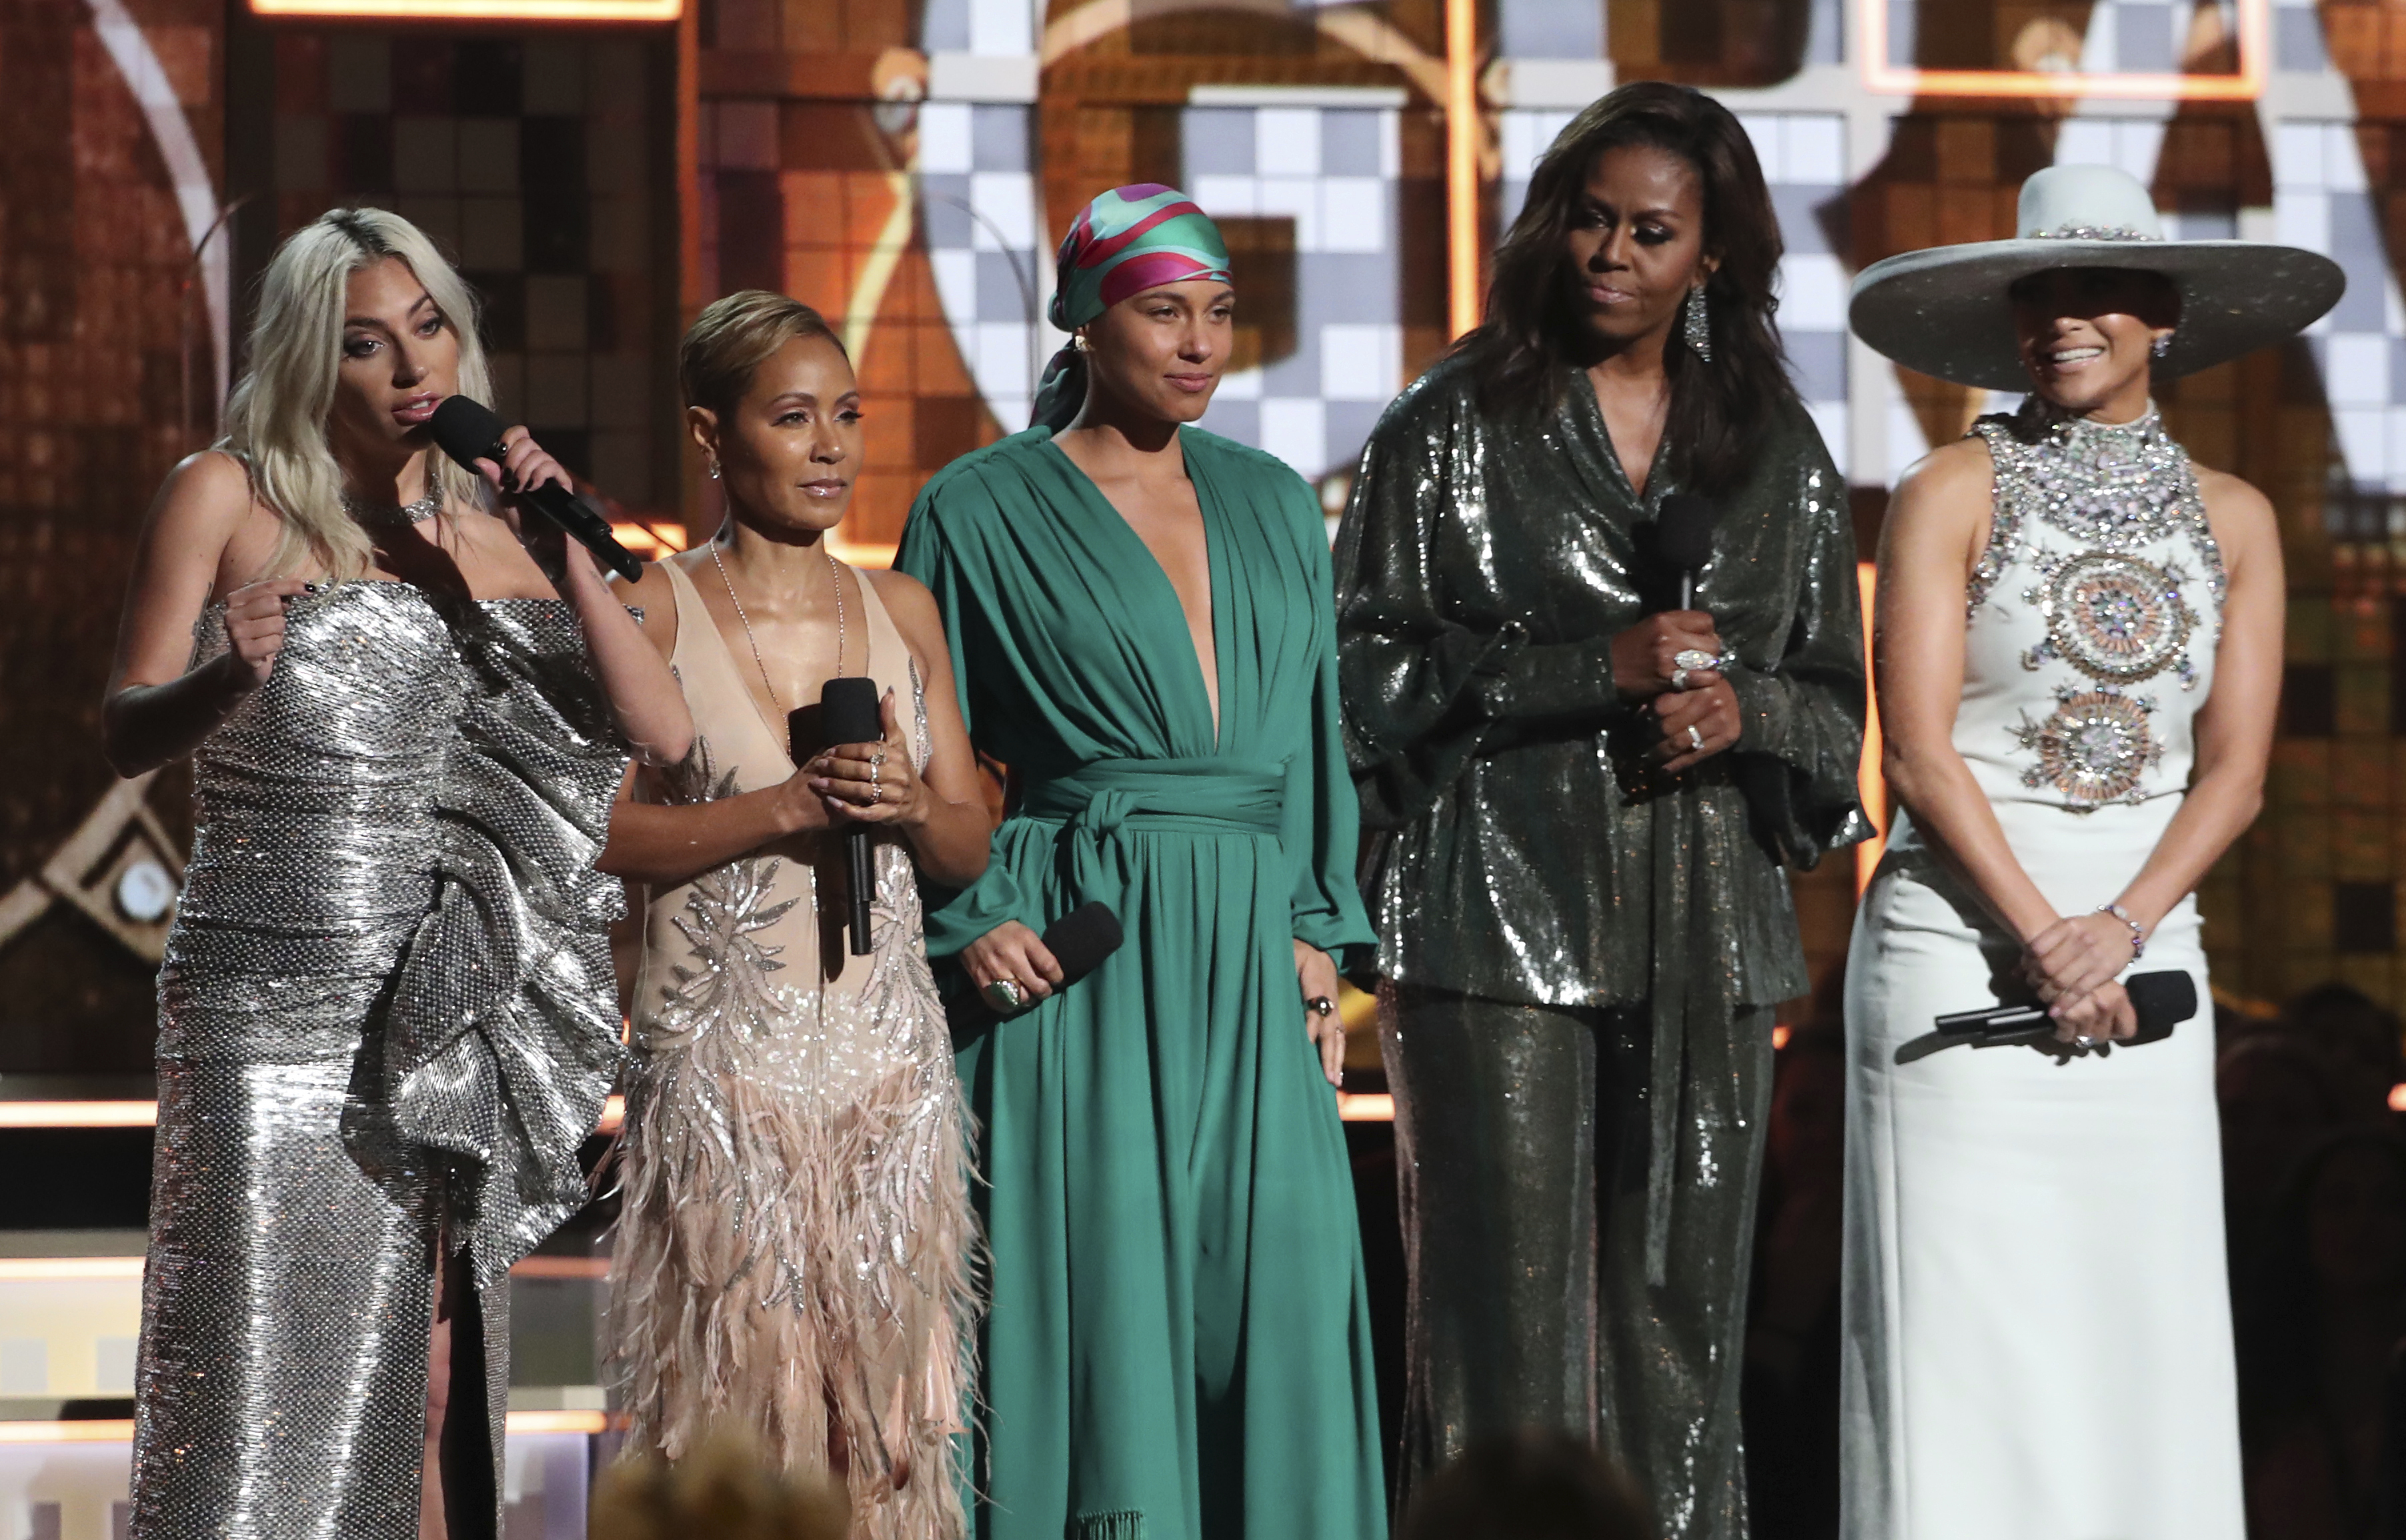 Lady Gaga, Jada Pinkett Smith, Alicia Keys, Michelle Obama and Jennifer Lopez